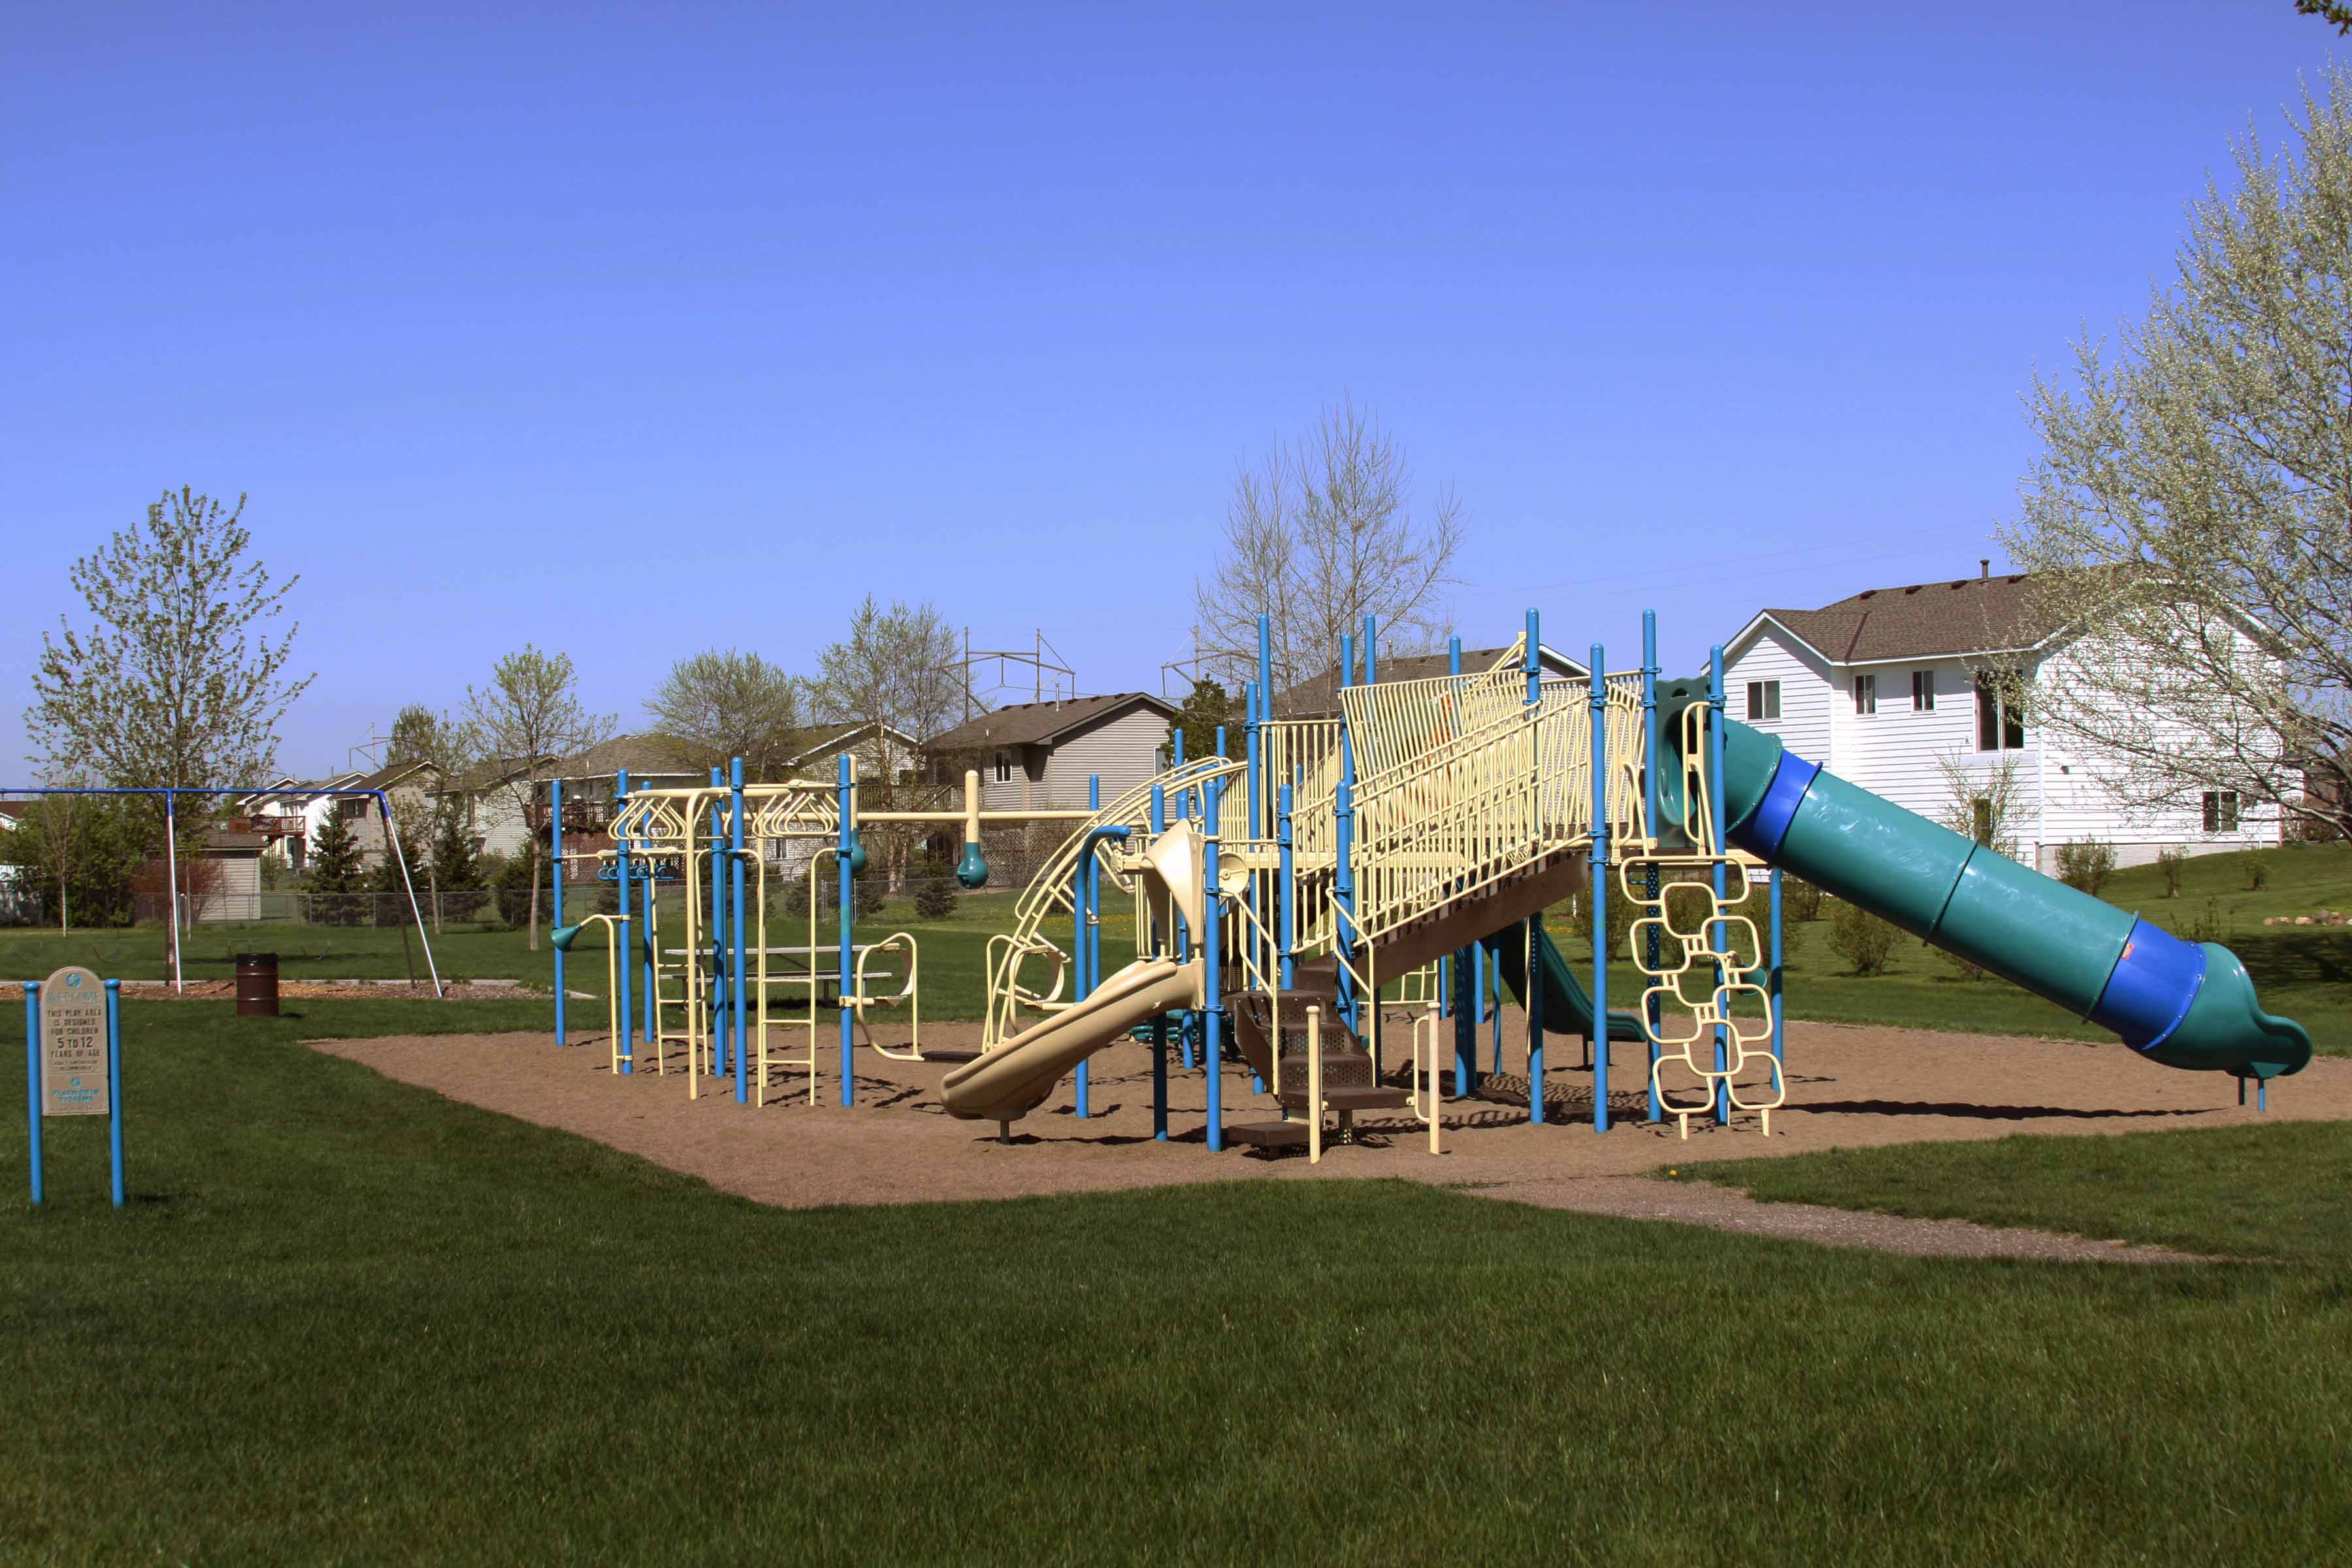 Mitchell Farms Park Playground Equipment 5